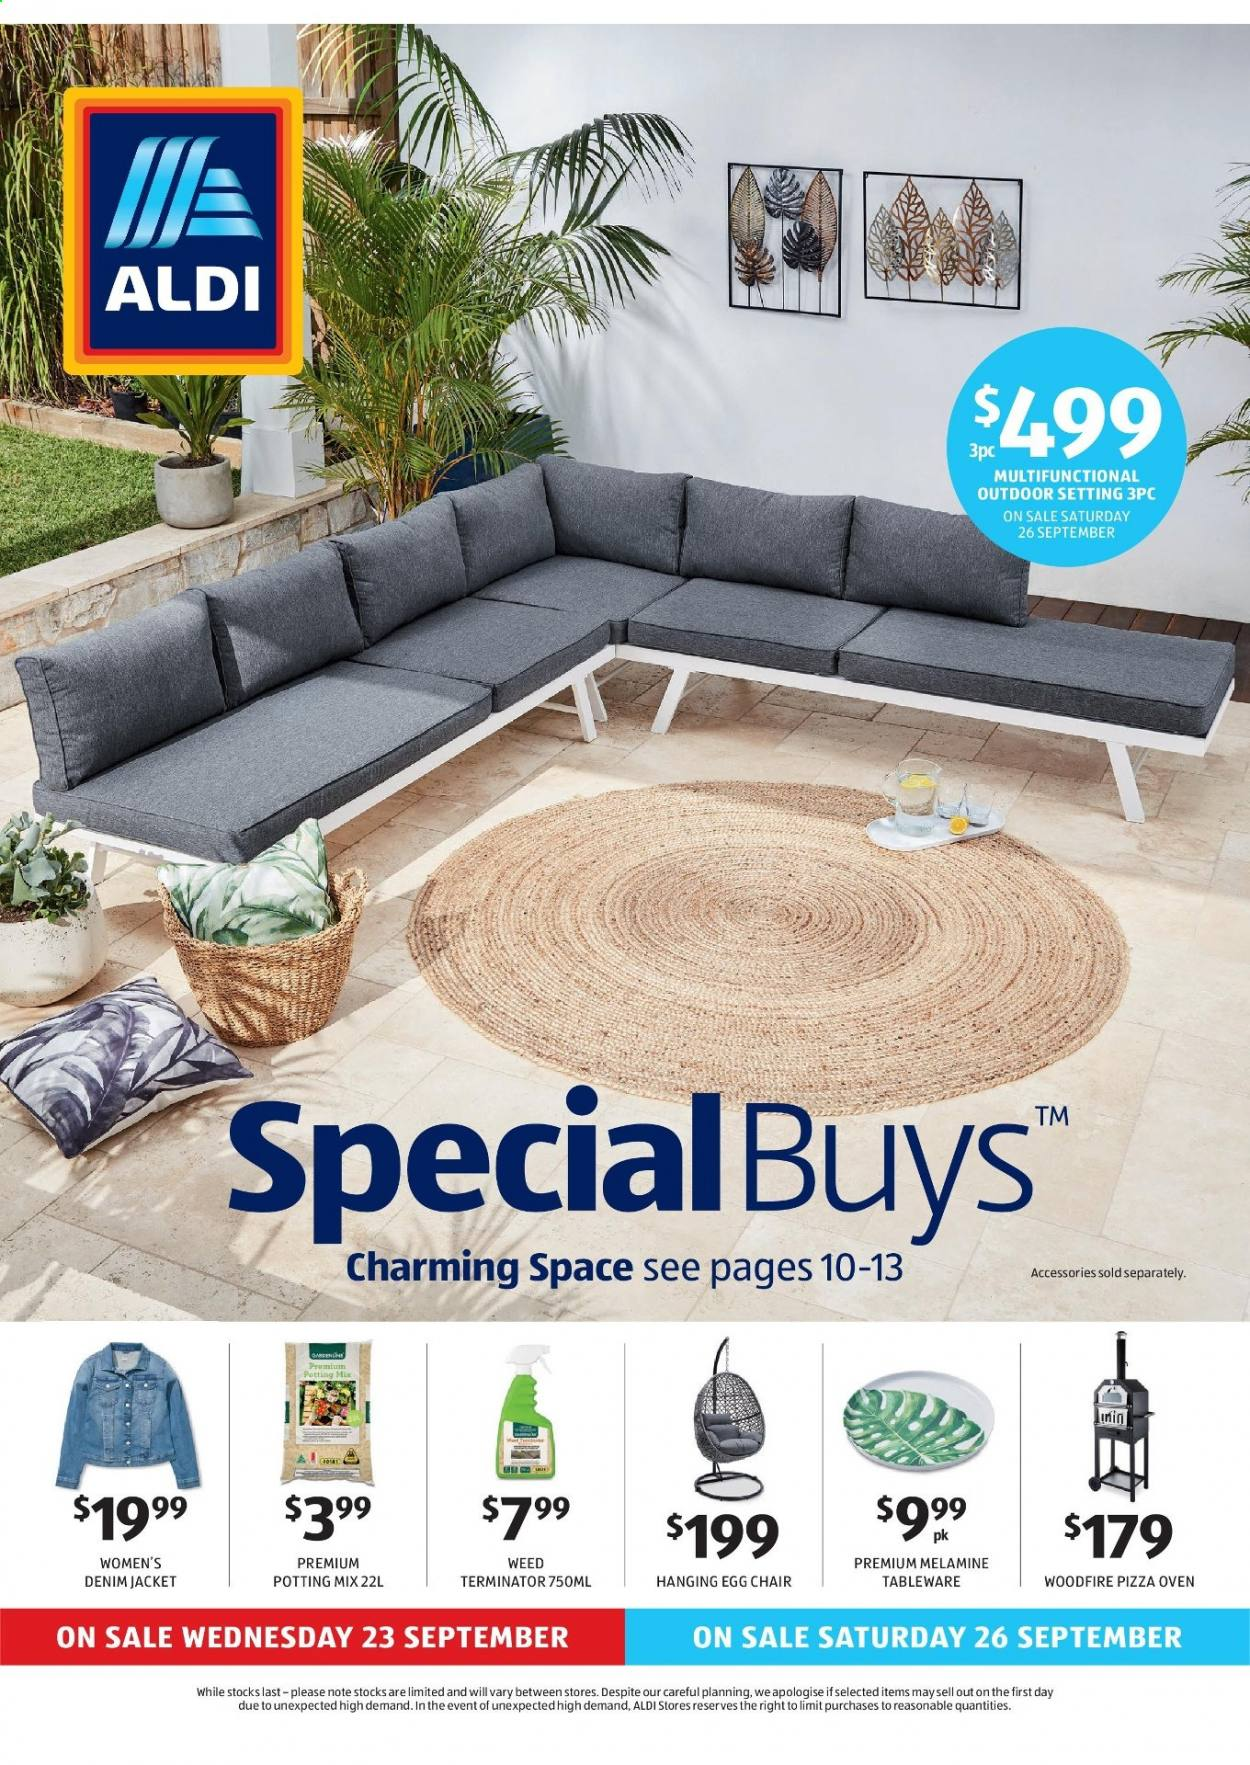 ALDI Catalogue - 23.9.2020 - 29.9.2020 - Sales products - eggs, tableware, chair, jacket, jeans, pizza, pizza oven, oven. Page 1.